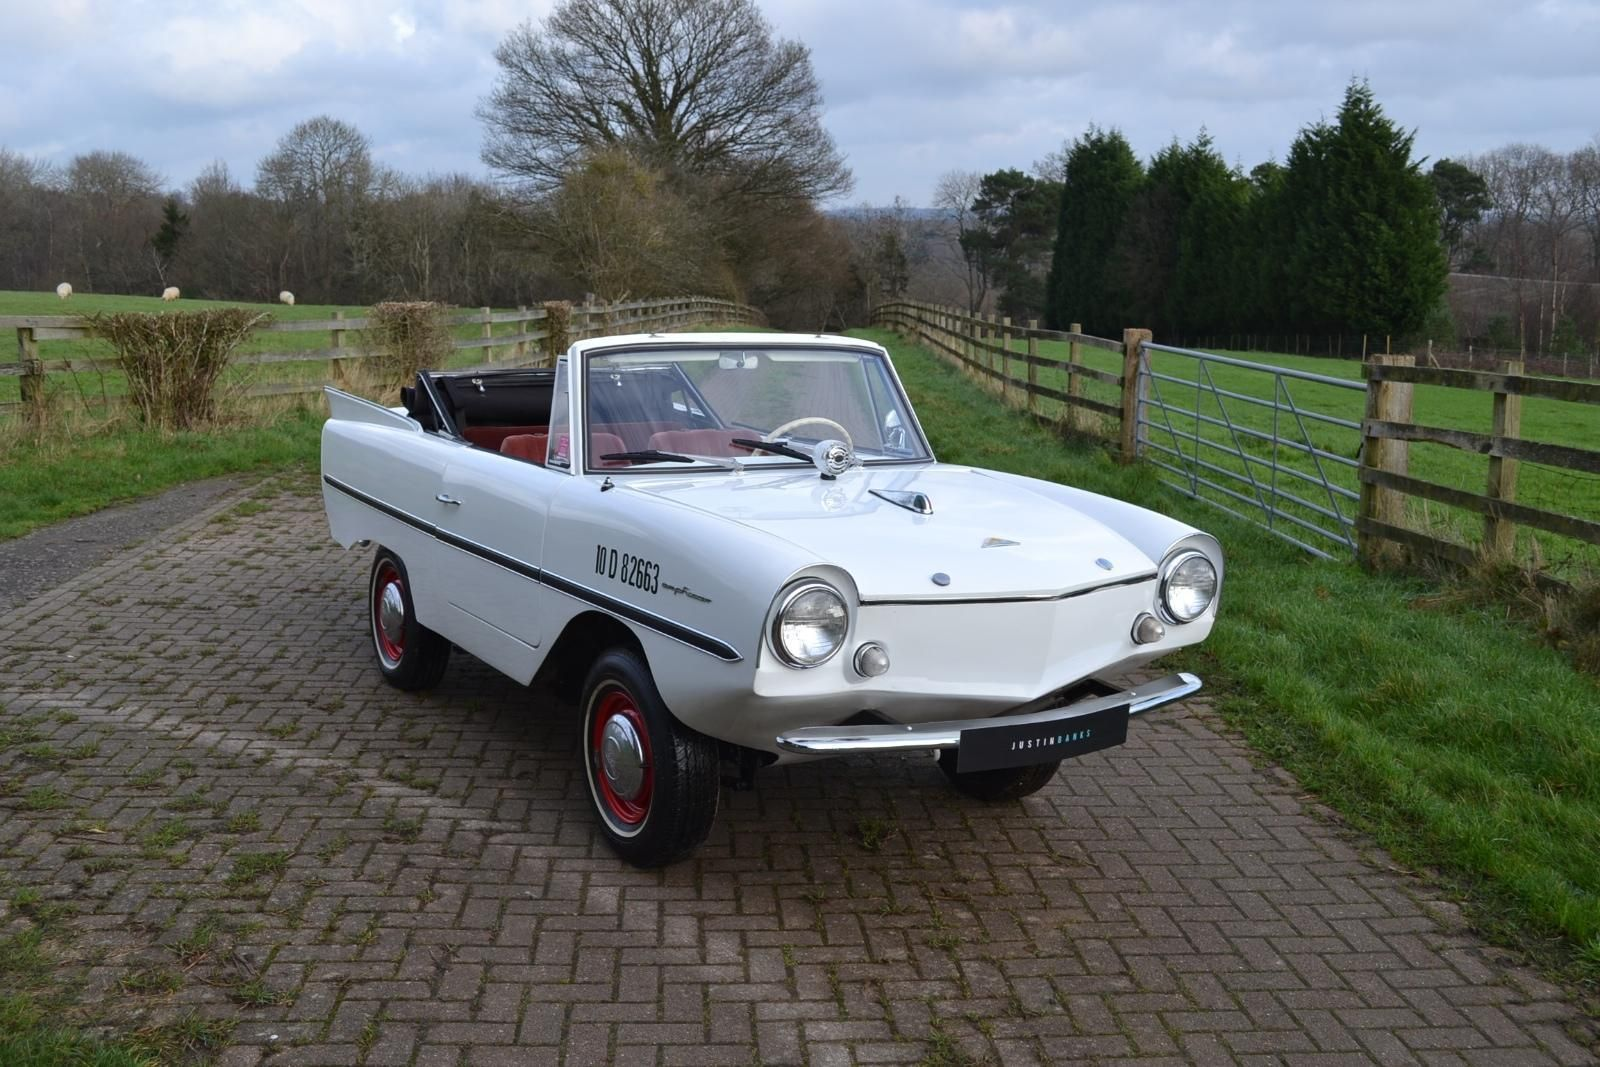 1962 Amphicar 770 Cabriolet LHD in Cars, Motorcycles